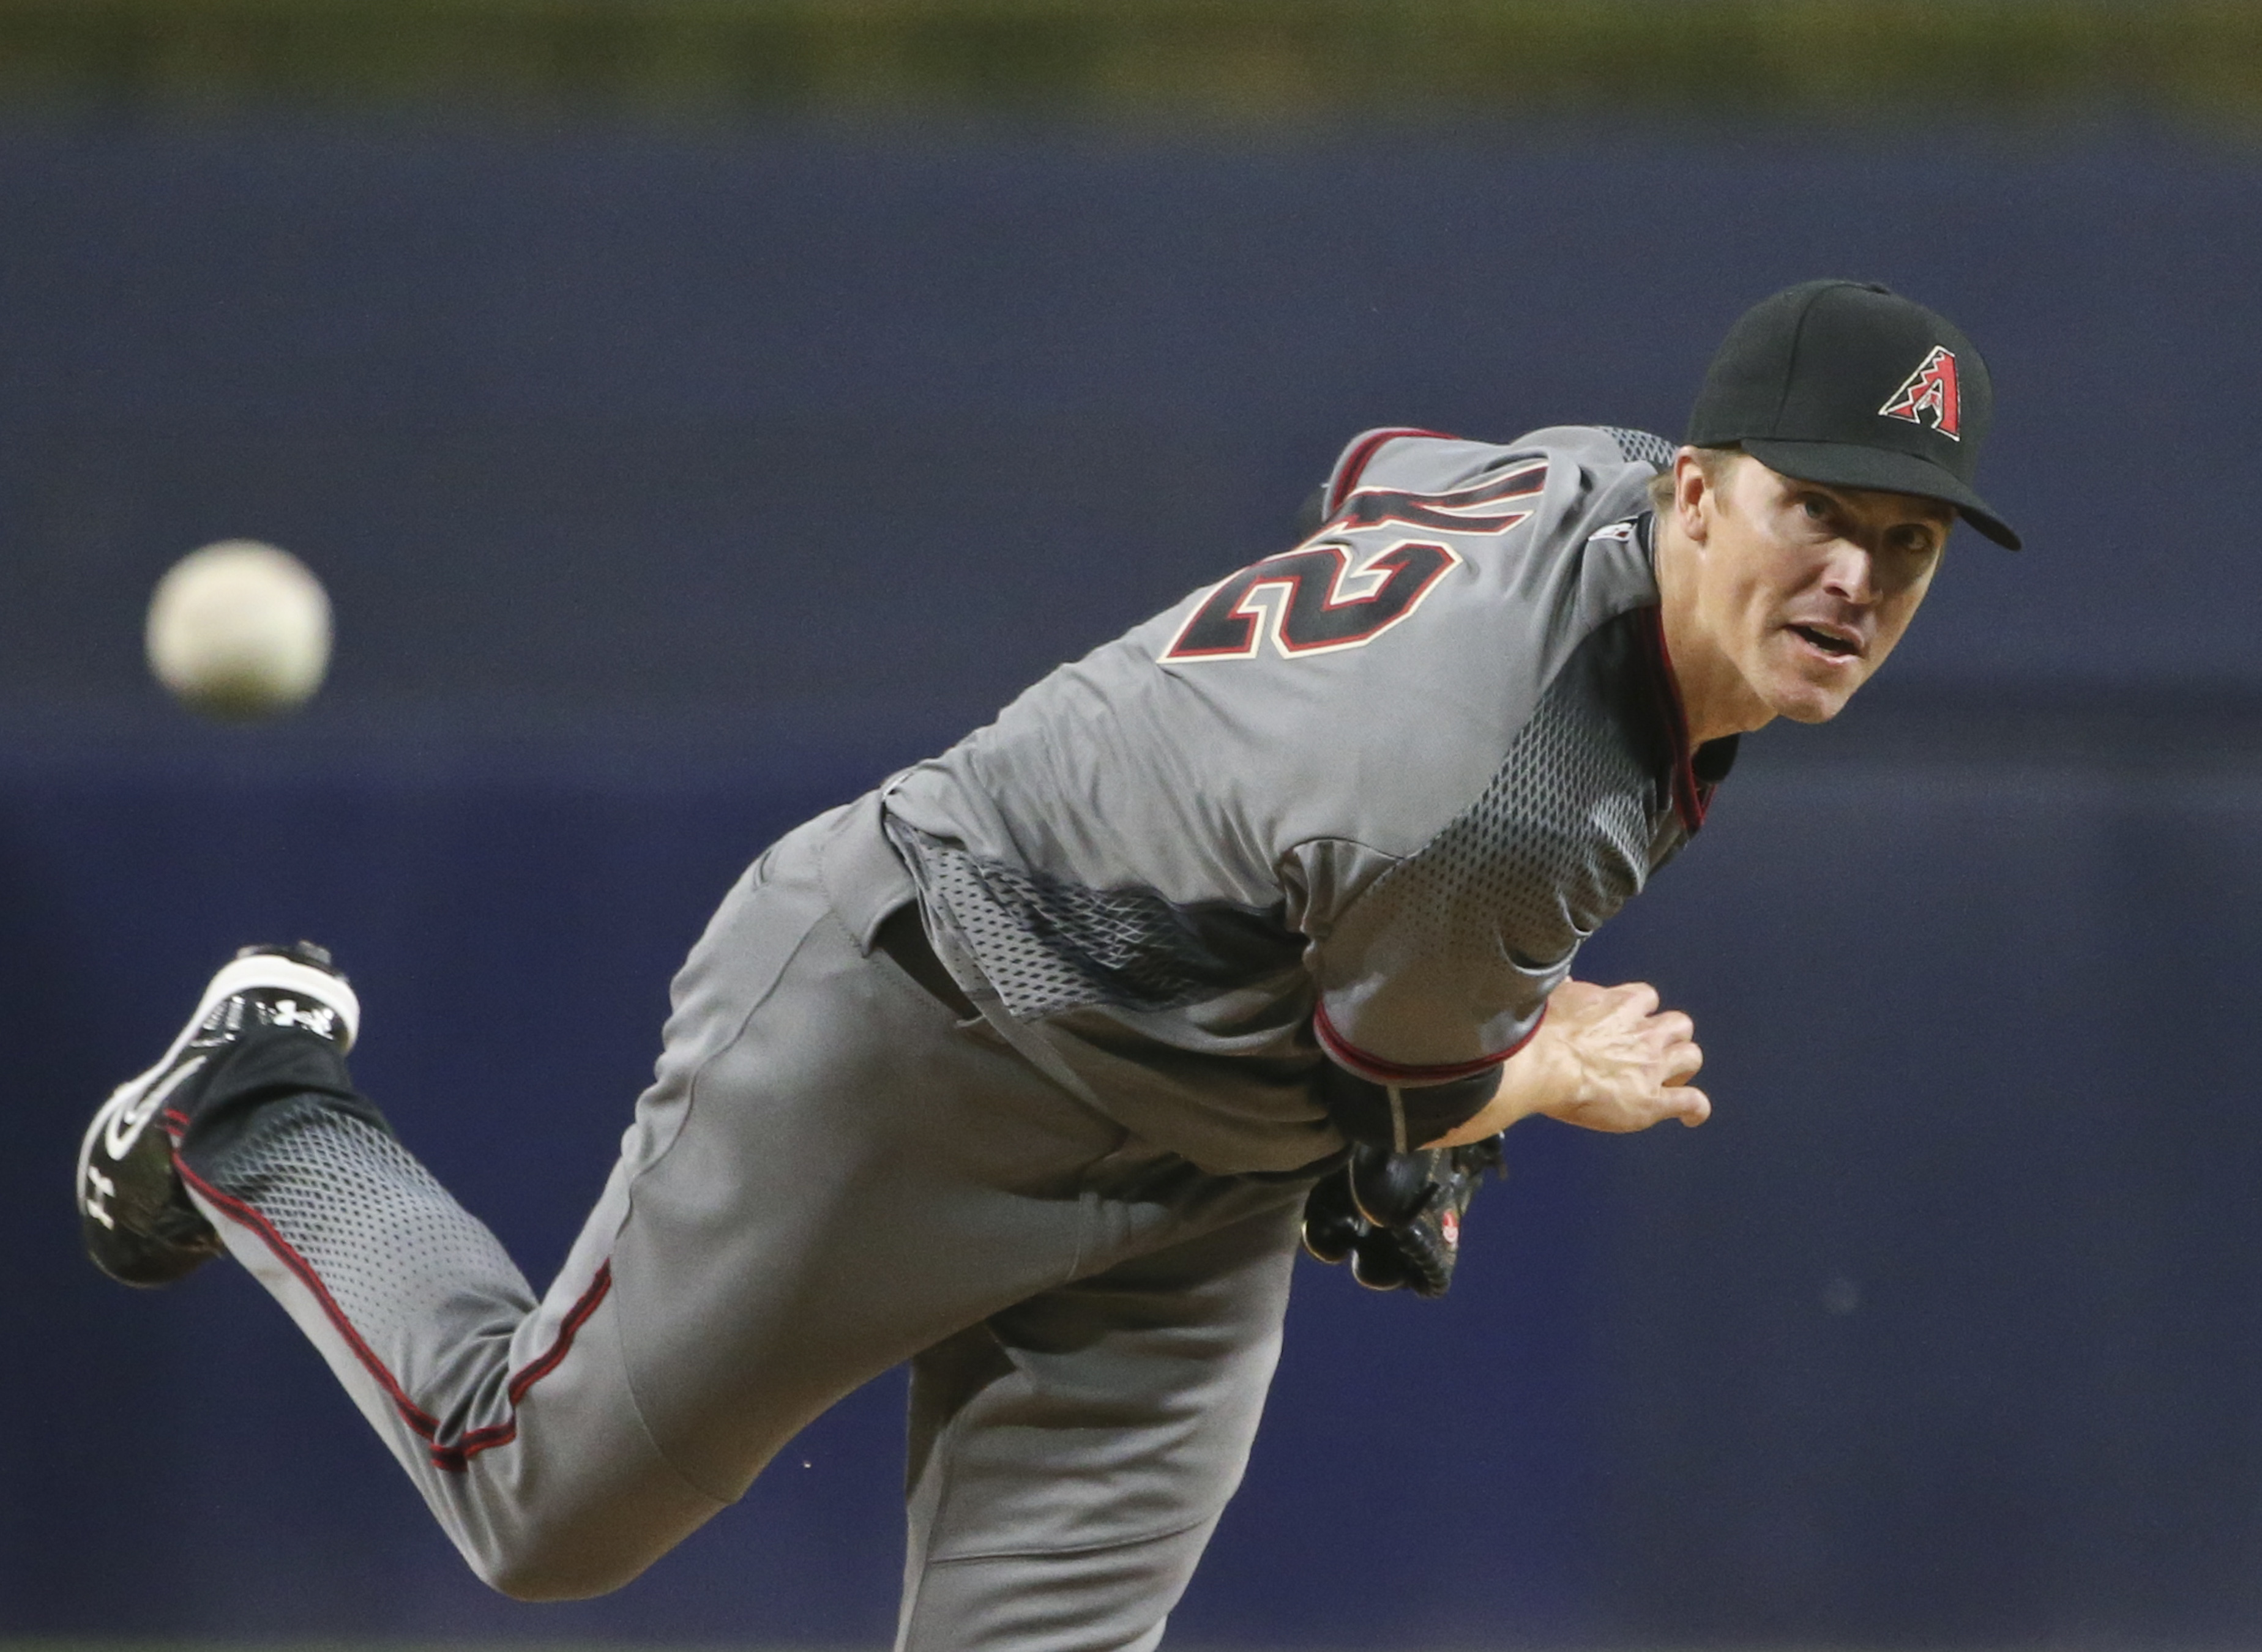 Arizona Diamondbacks starting pitcher Zack Greinke throws to a San Diego Padres batter during the first inning of a baseball game Friday, April 15, 2016, in San Diego. (AP Photo/Lenny Ignelzi)